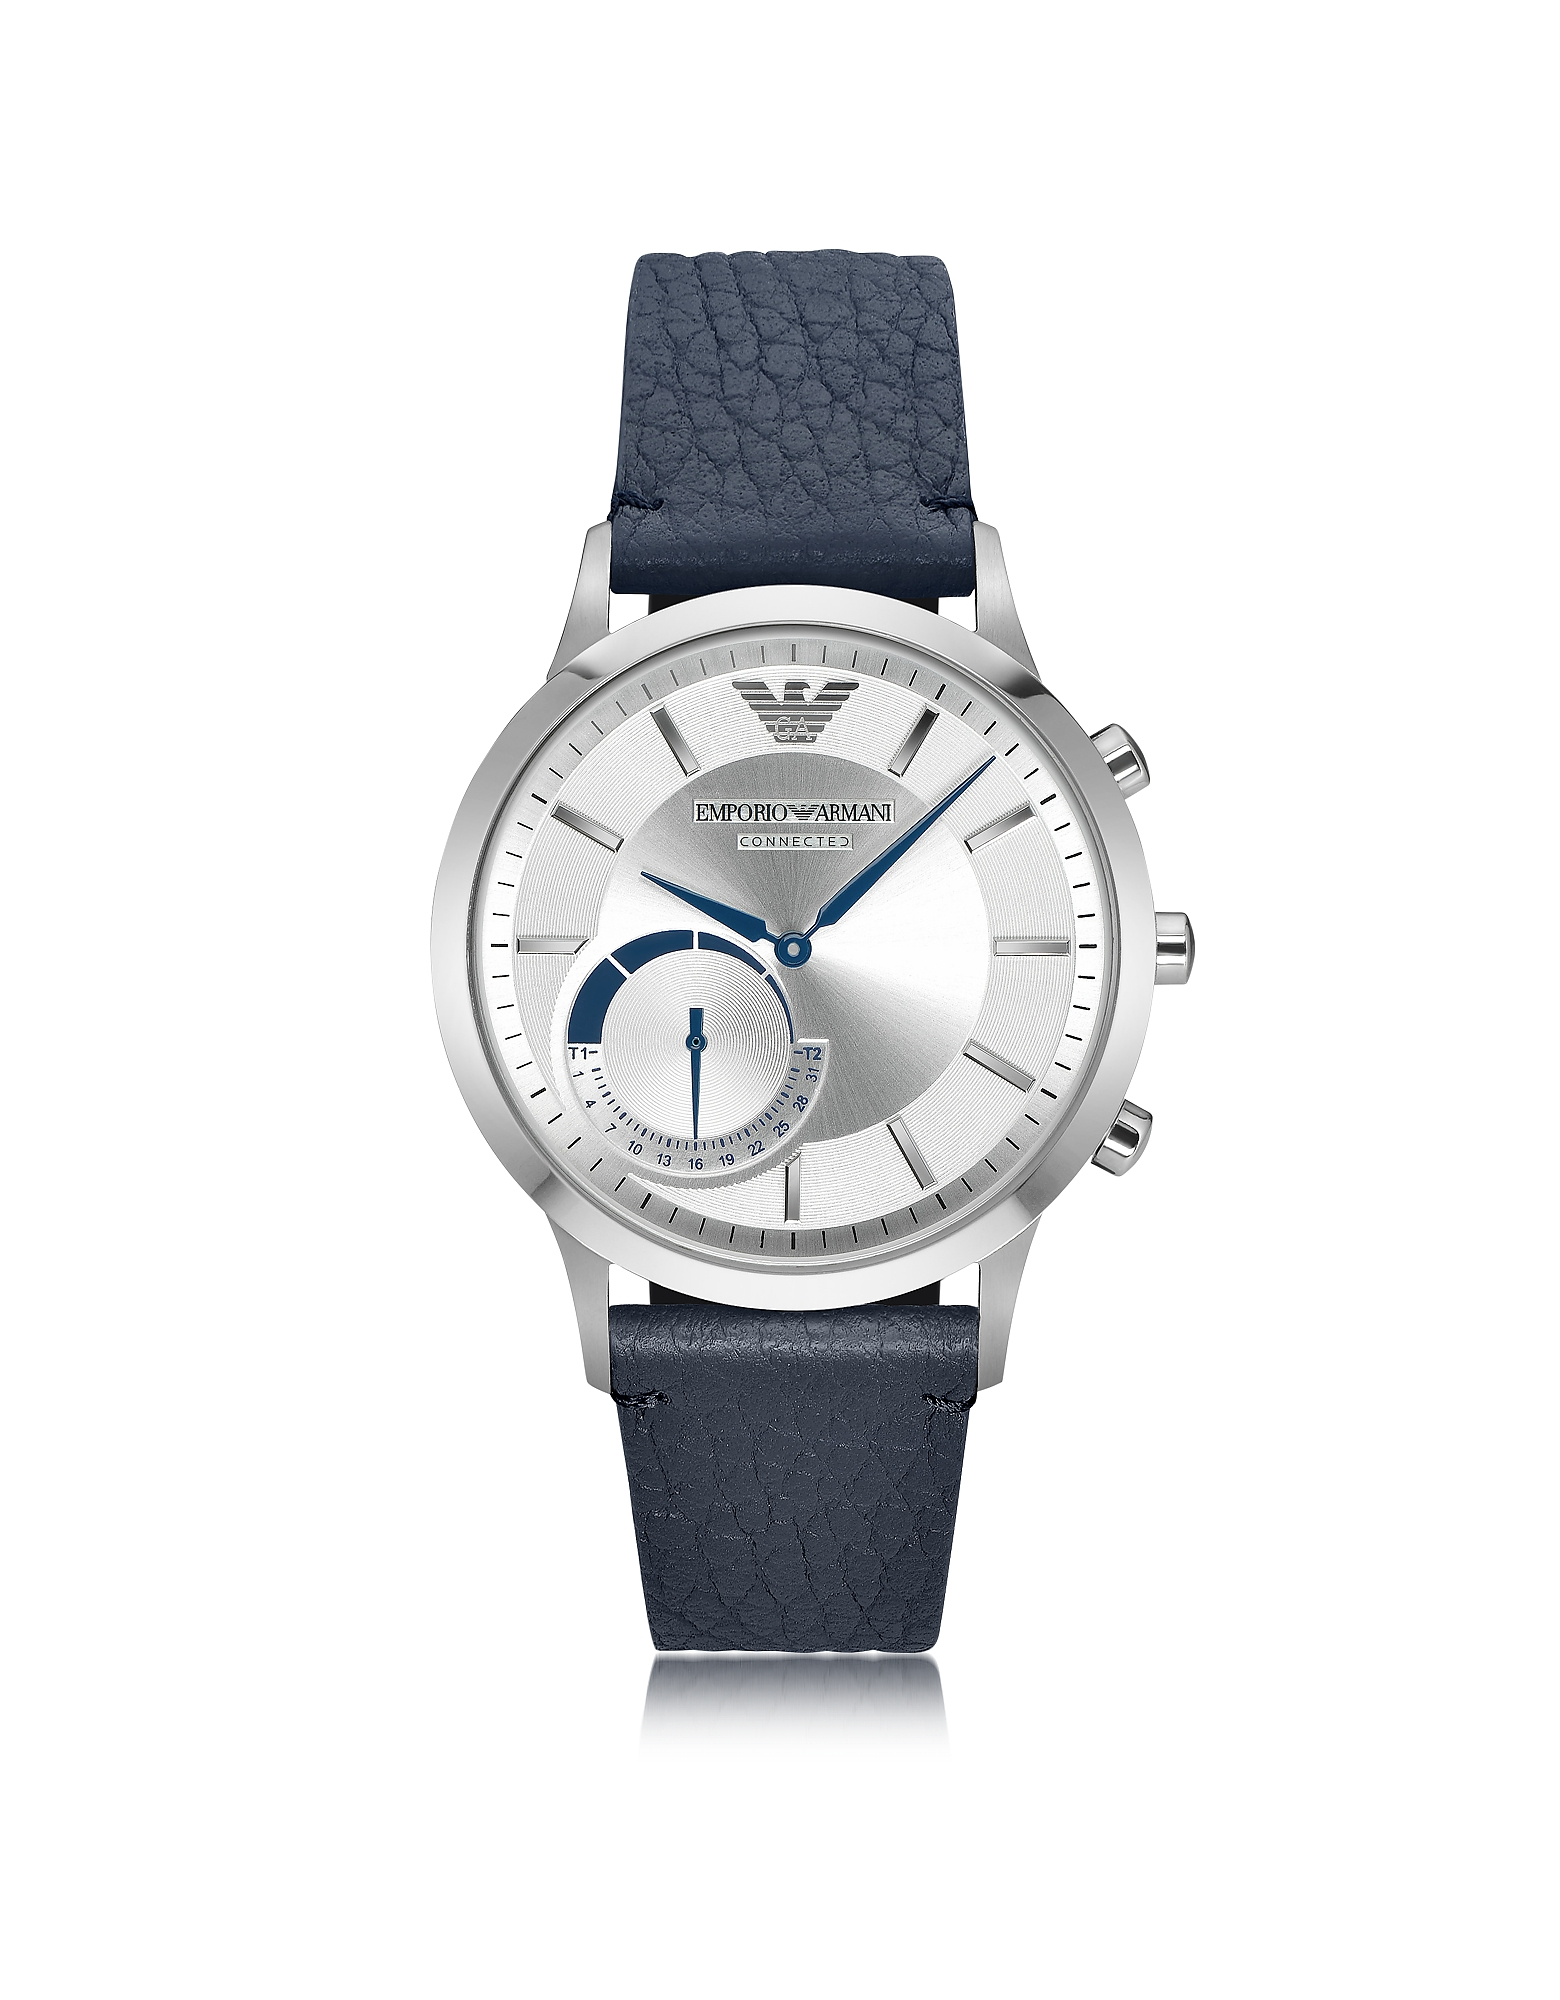 Connected Stainless Steel Hybrid Men's Smartwatch w/Blue Leather Strap Emporio Armani